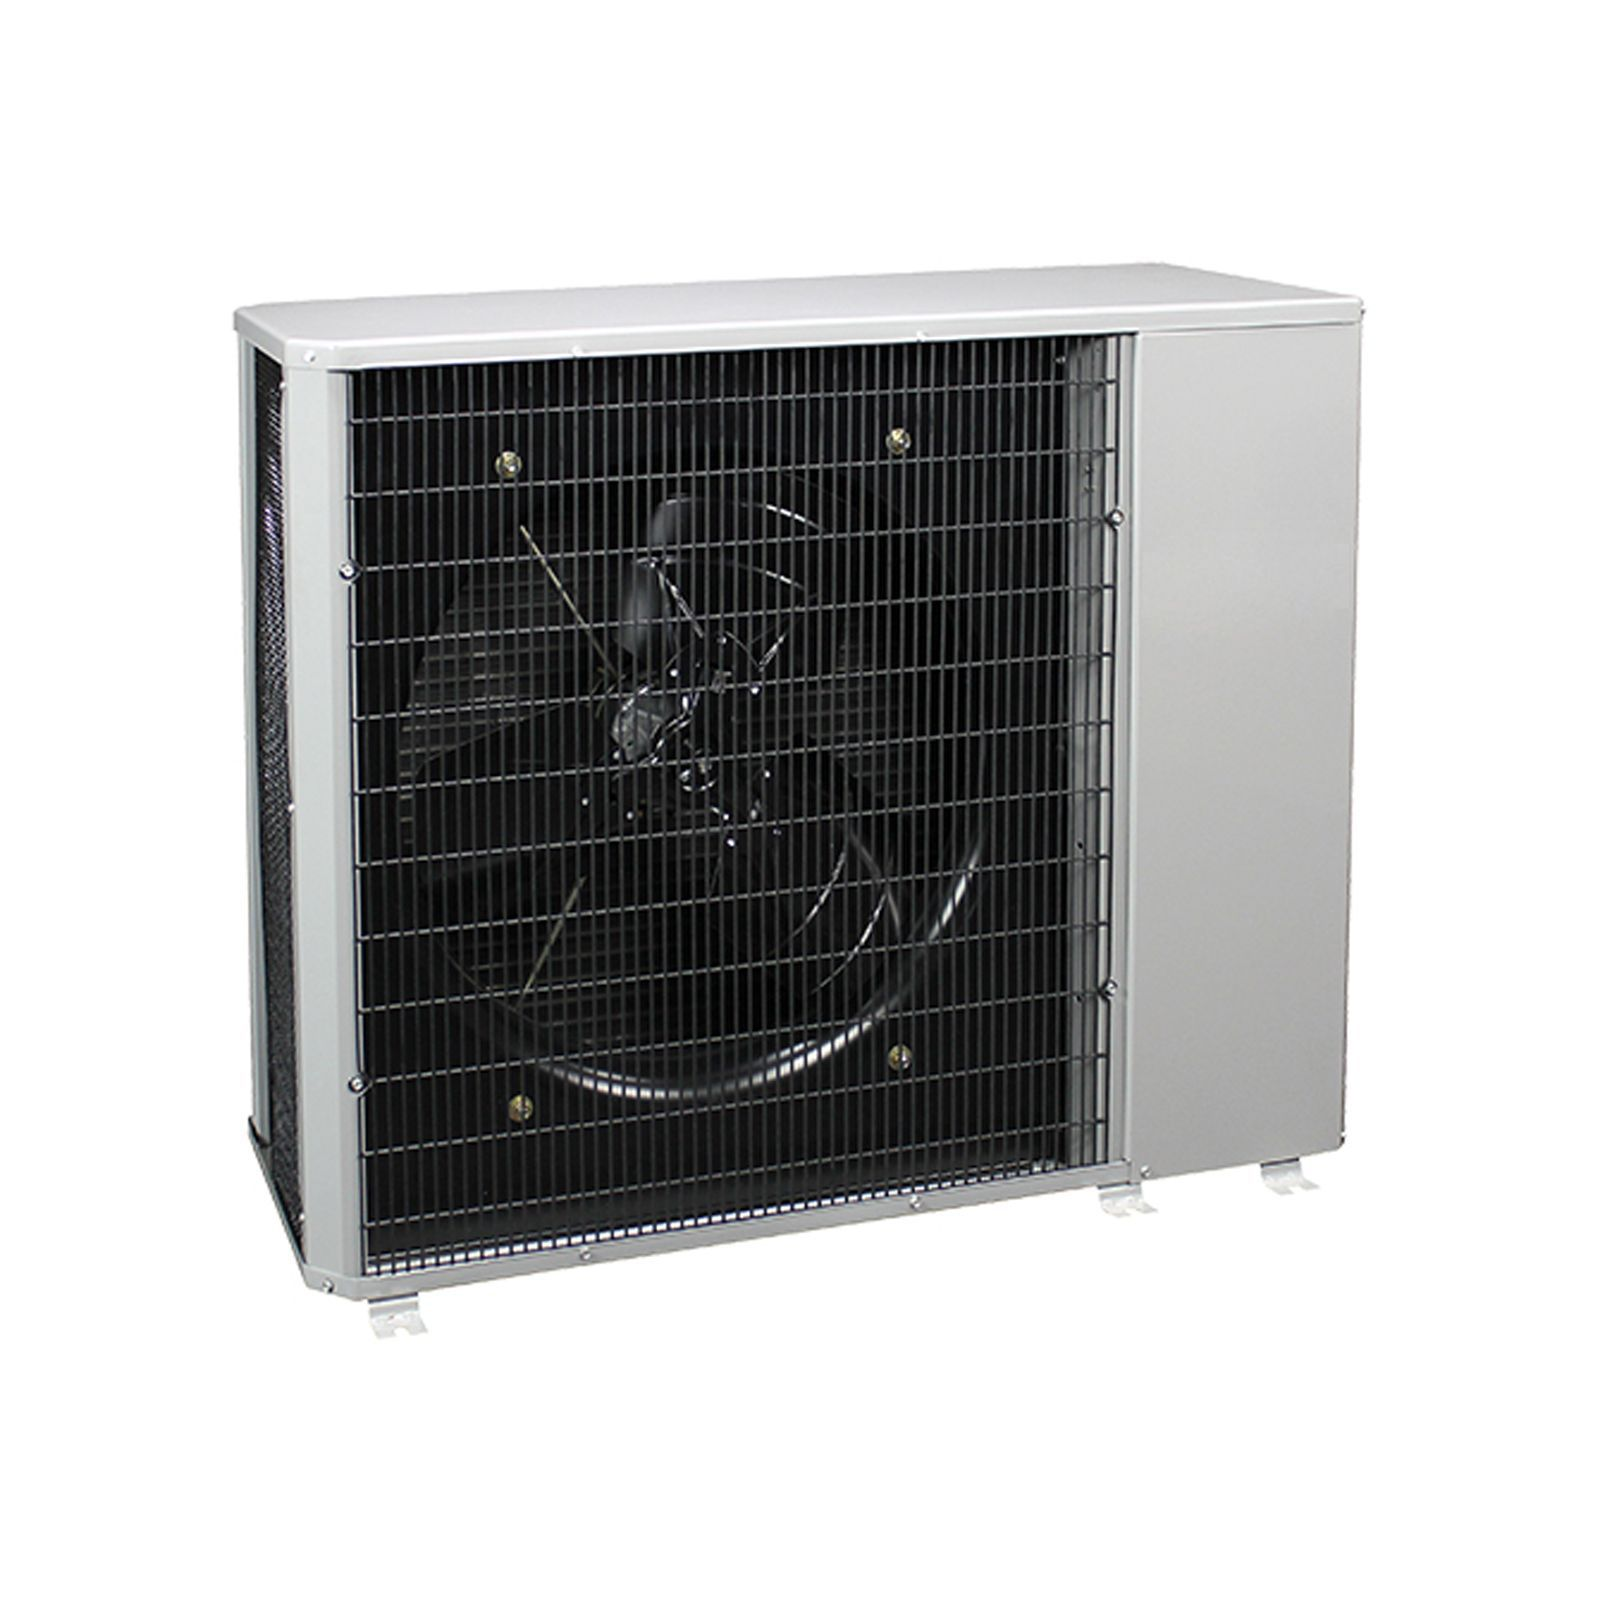 Tempstar NH4A436AKA - 3 Ton, 14 SEER Performance 14 Air Conditioner